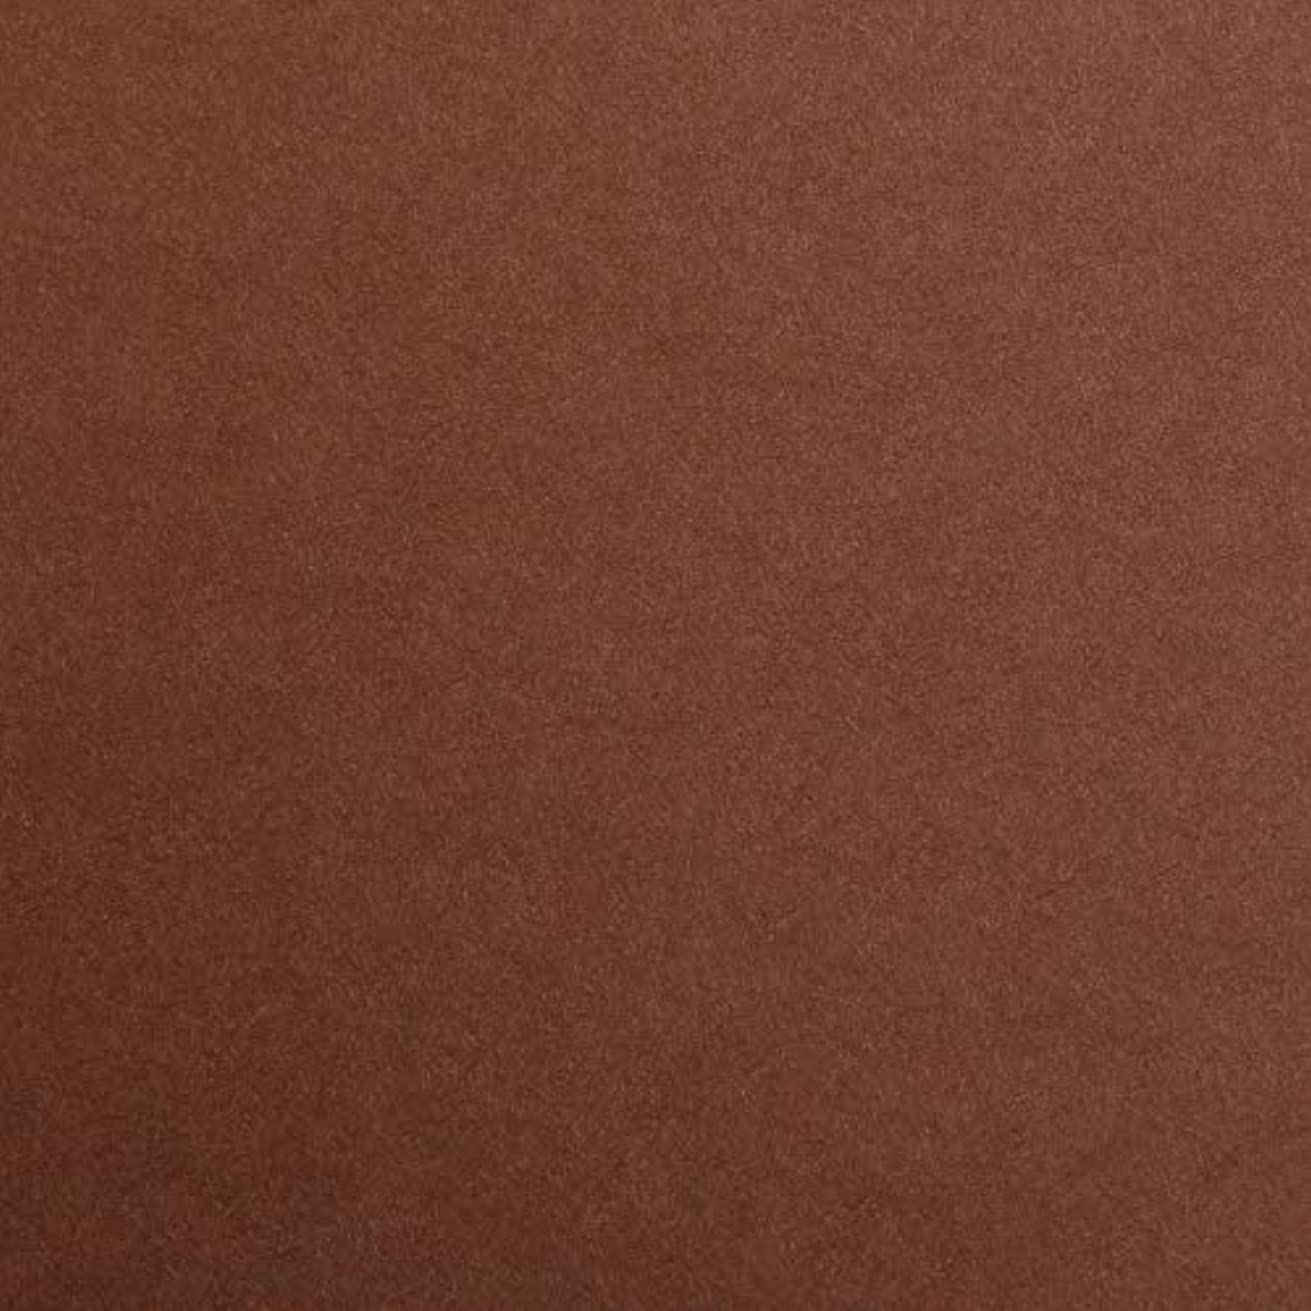 Clairefontaine Maya Coloured Smooth Drawing Paper, 270 g, 70 x 100 cm - Brown, Pack of 25 Sheets